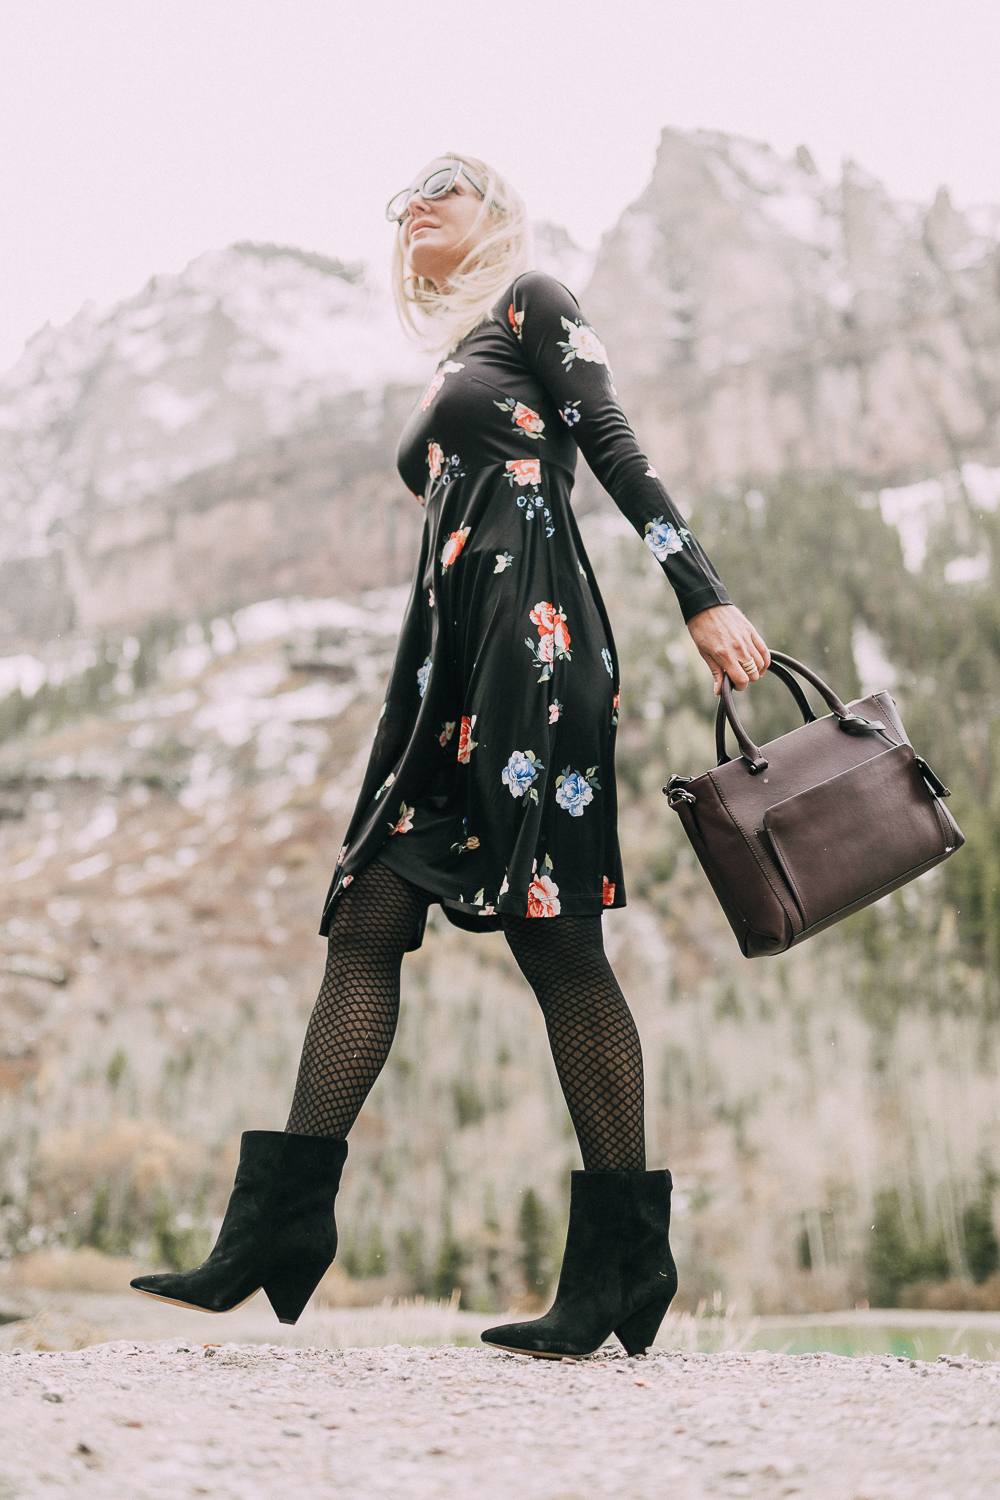 blond woman wearing black vince camuto regina Suede Booties paired with black floral print dress carrying burgundy tote bag with rocky mountains background